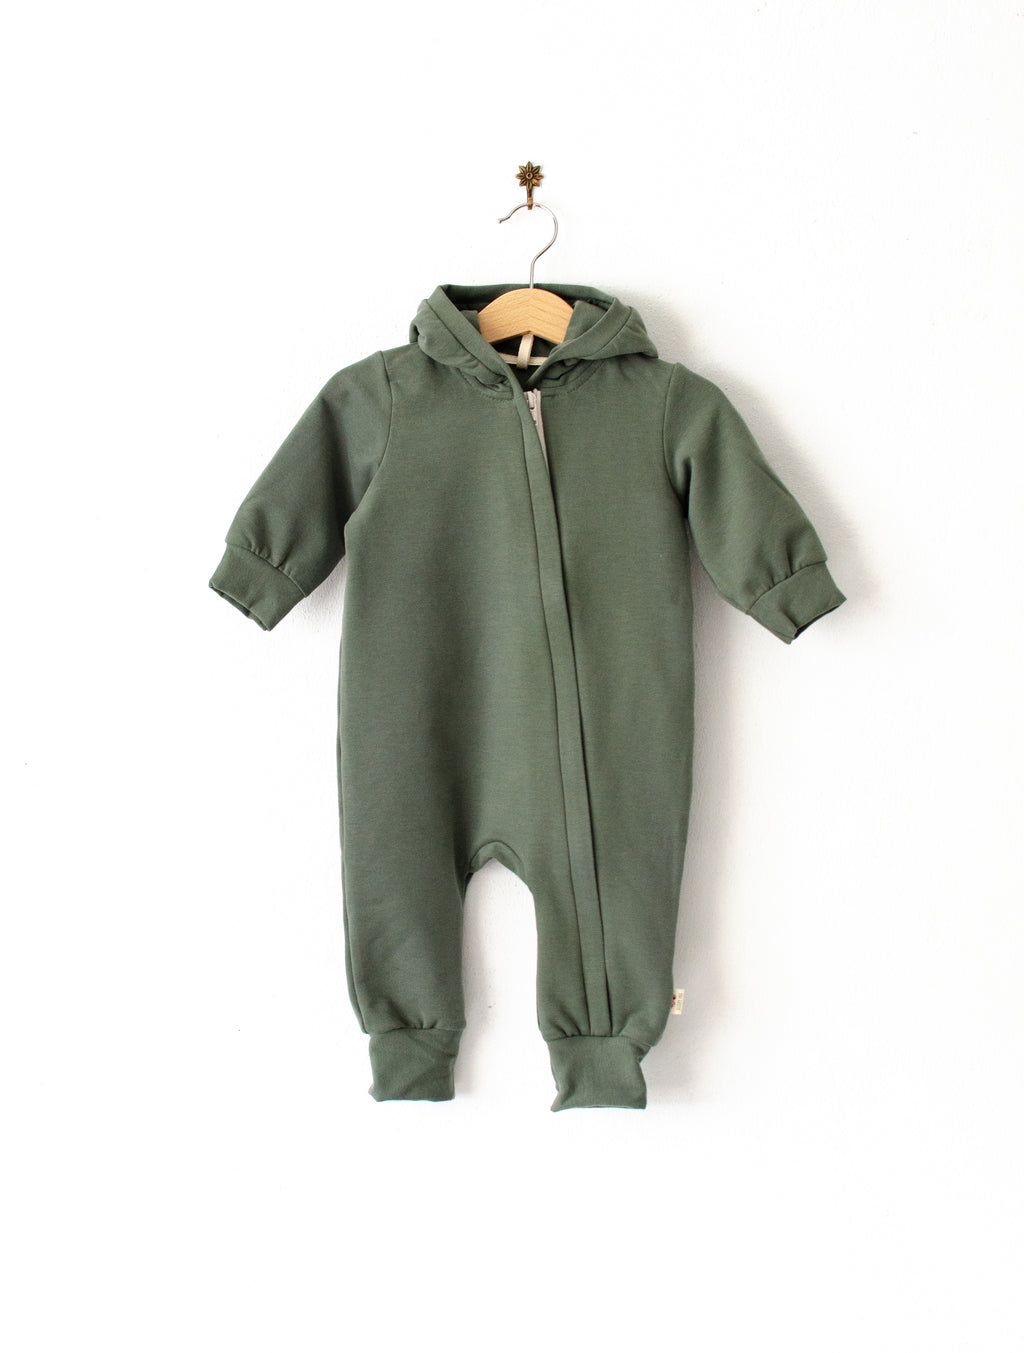 Hooded jumpsuit with a zip